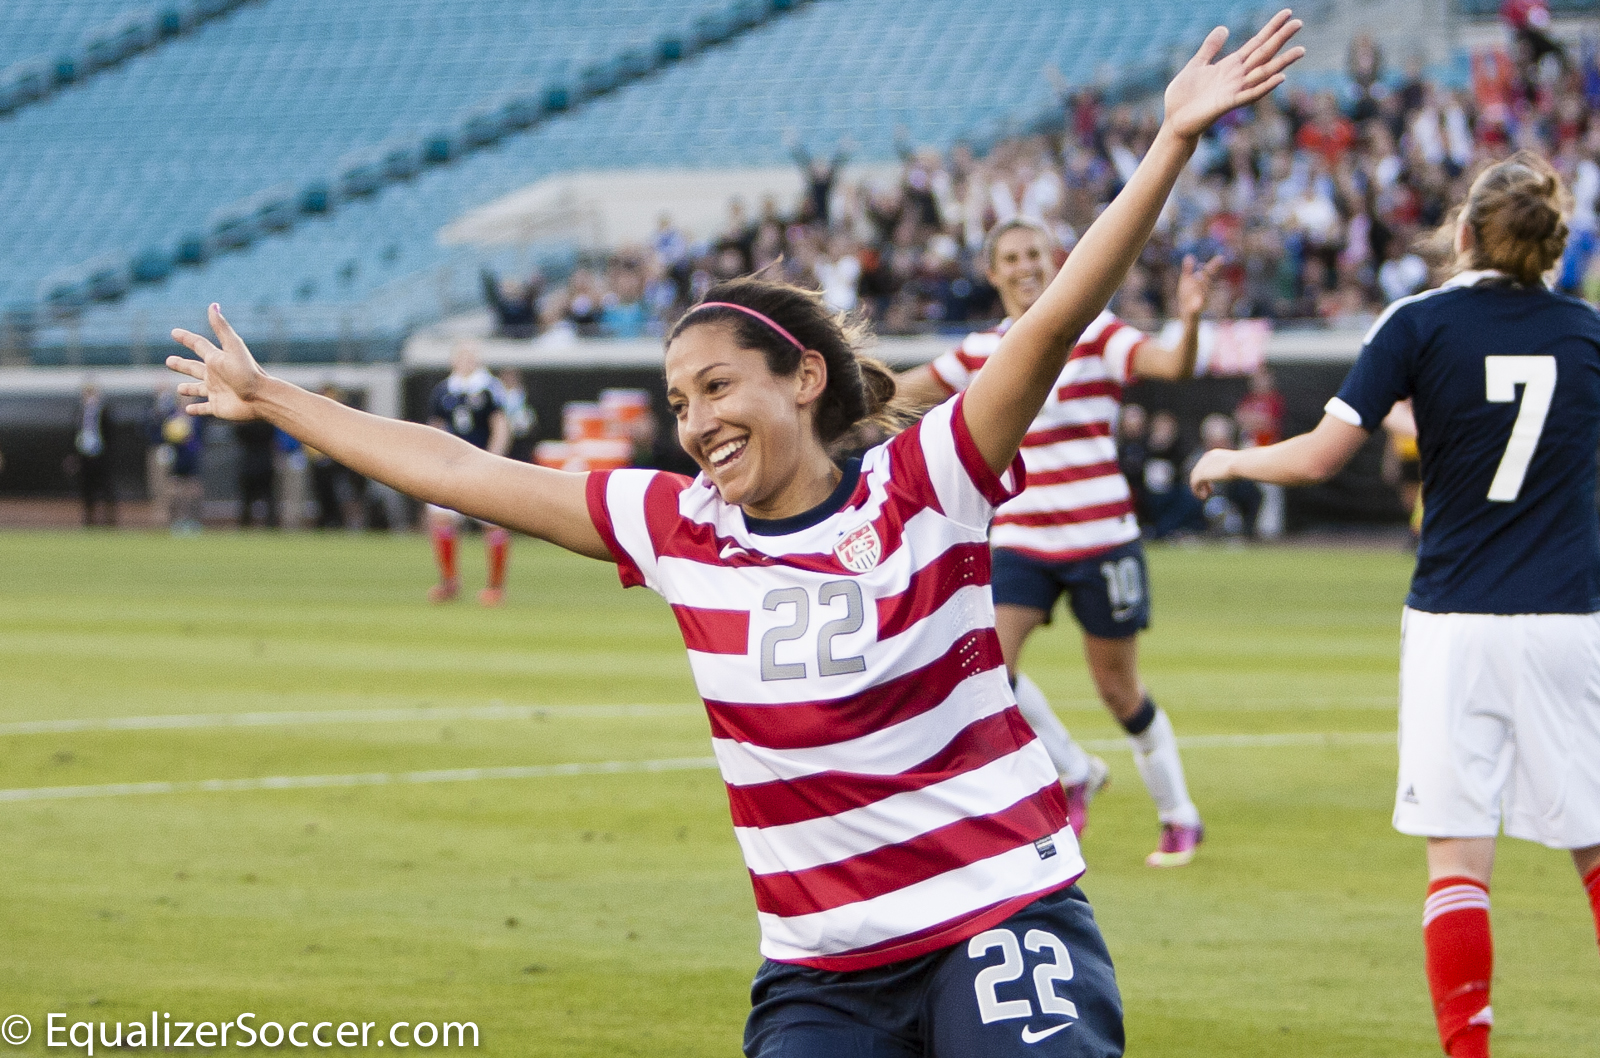 Christen Press is about to win the golden boot in Sweden's Damallsvenskan. (Photo copyright Steve Bruno for www.equalizersoccer.com)